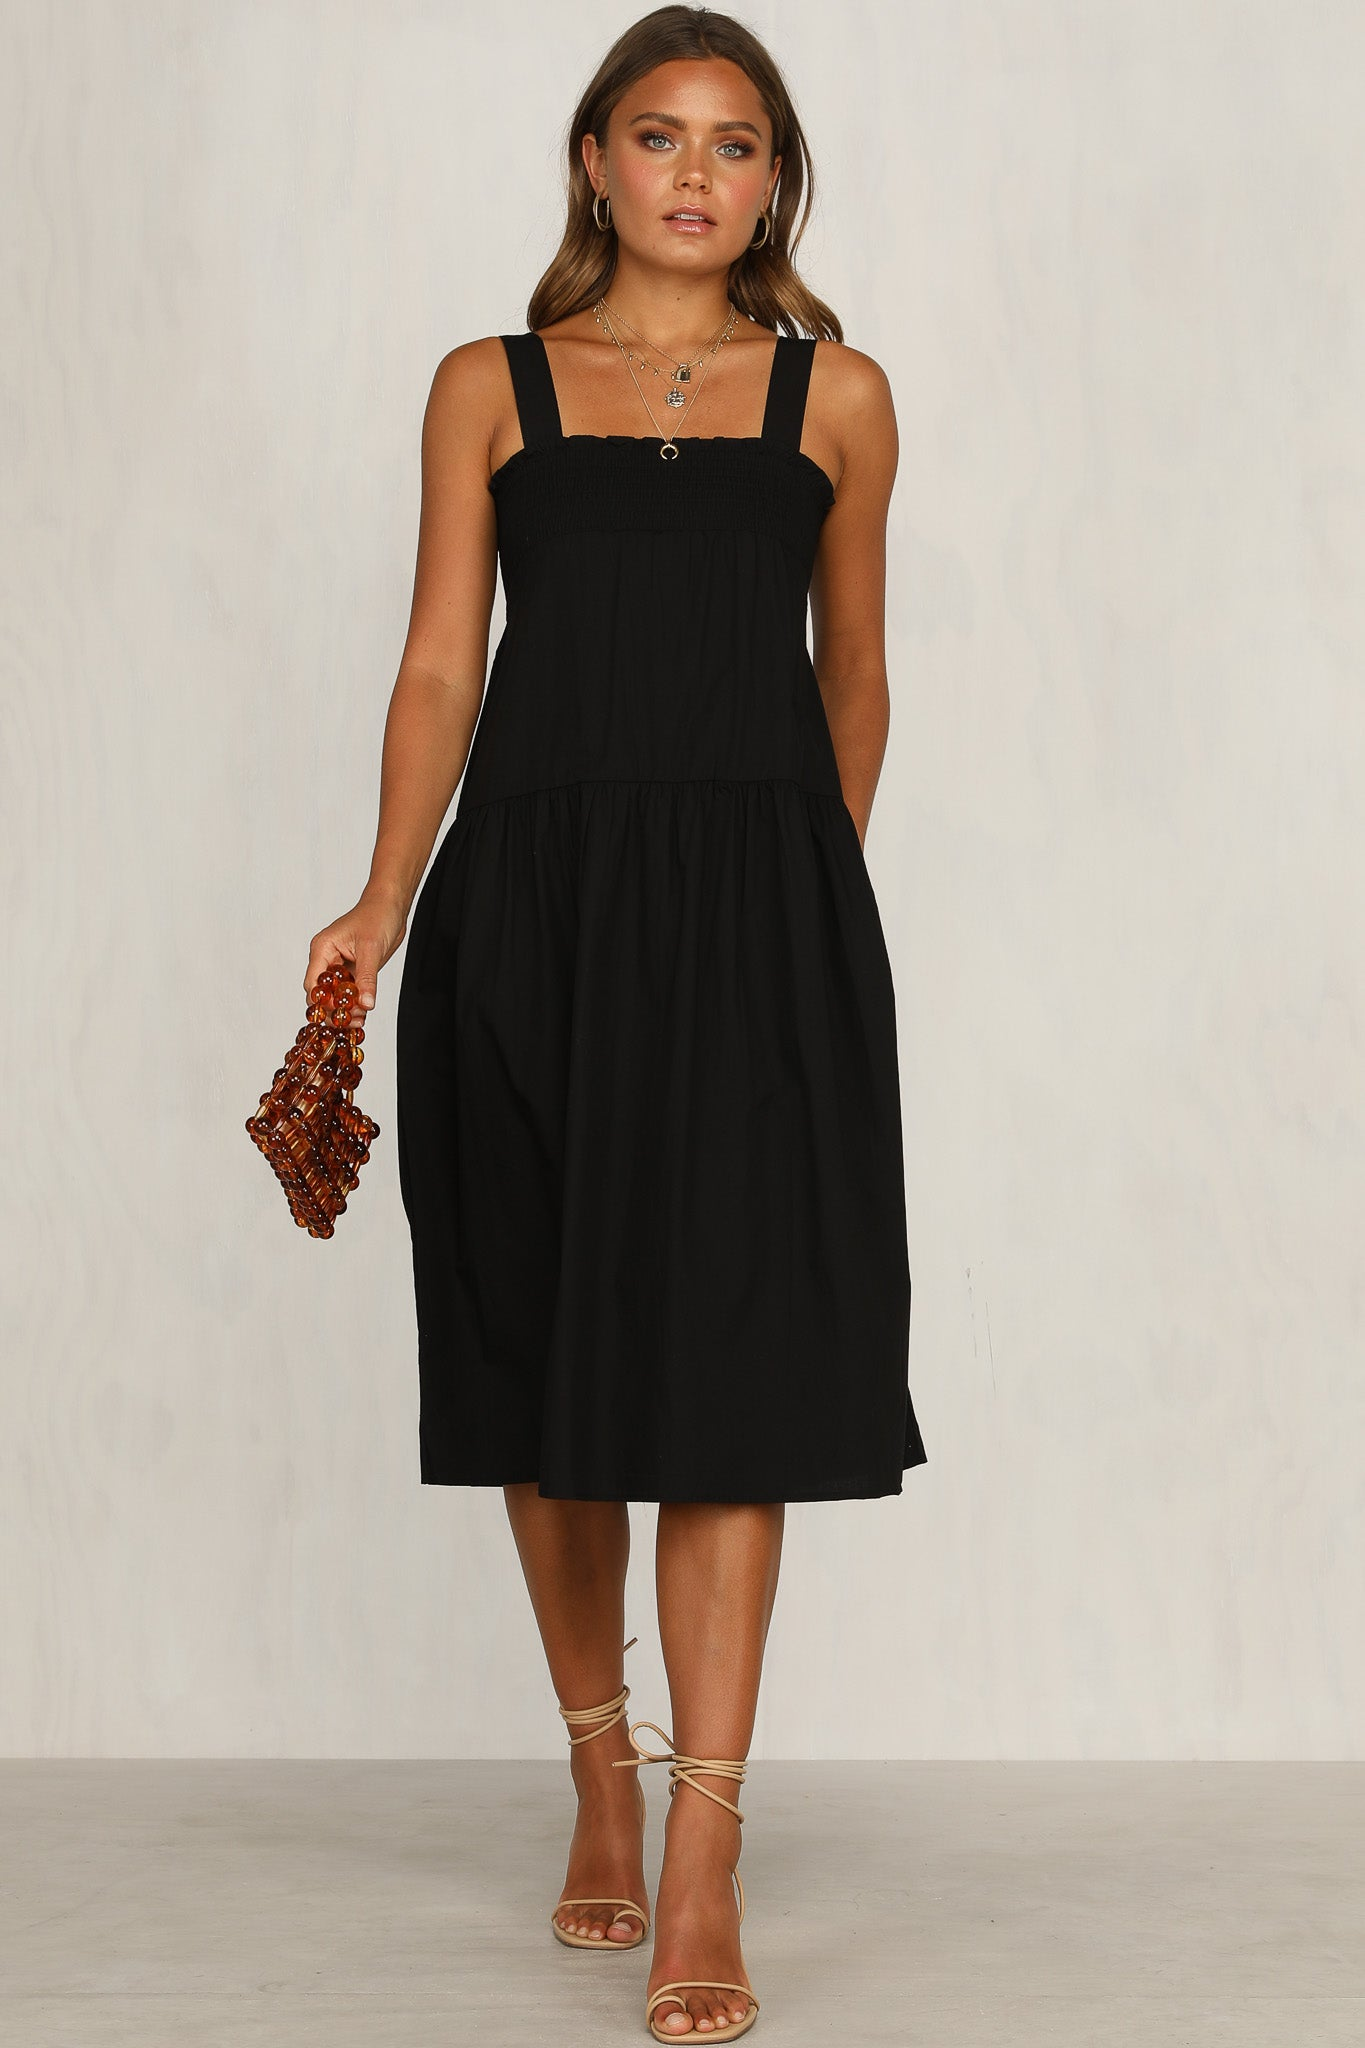 Frida Dress (Black)